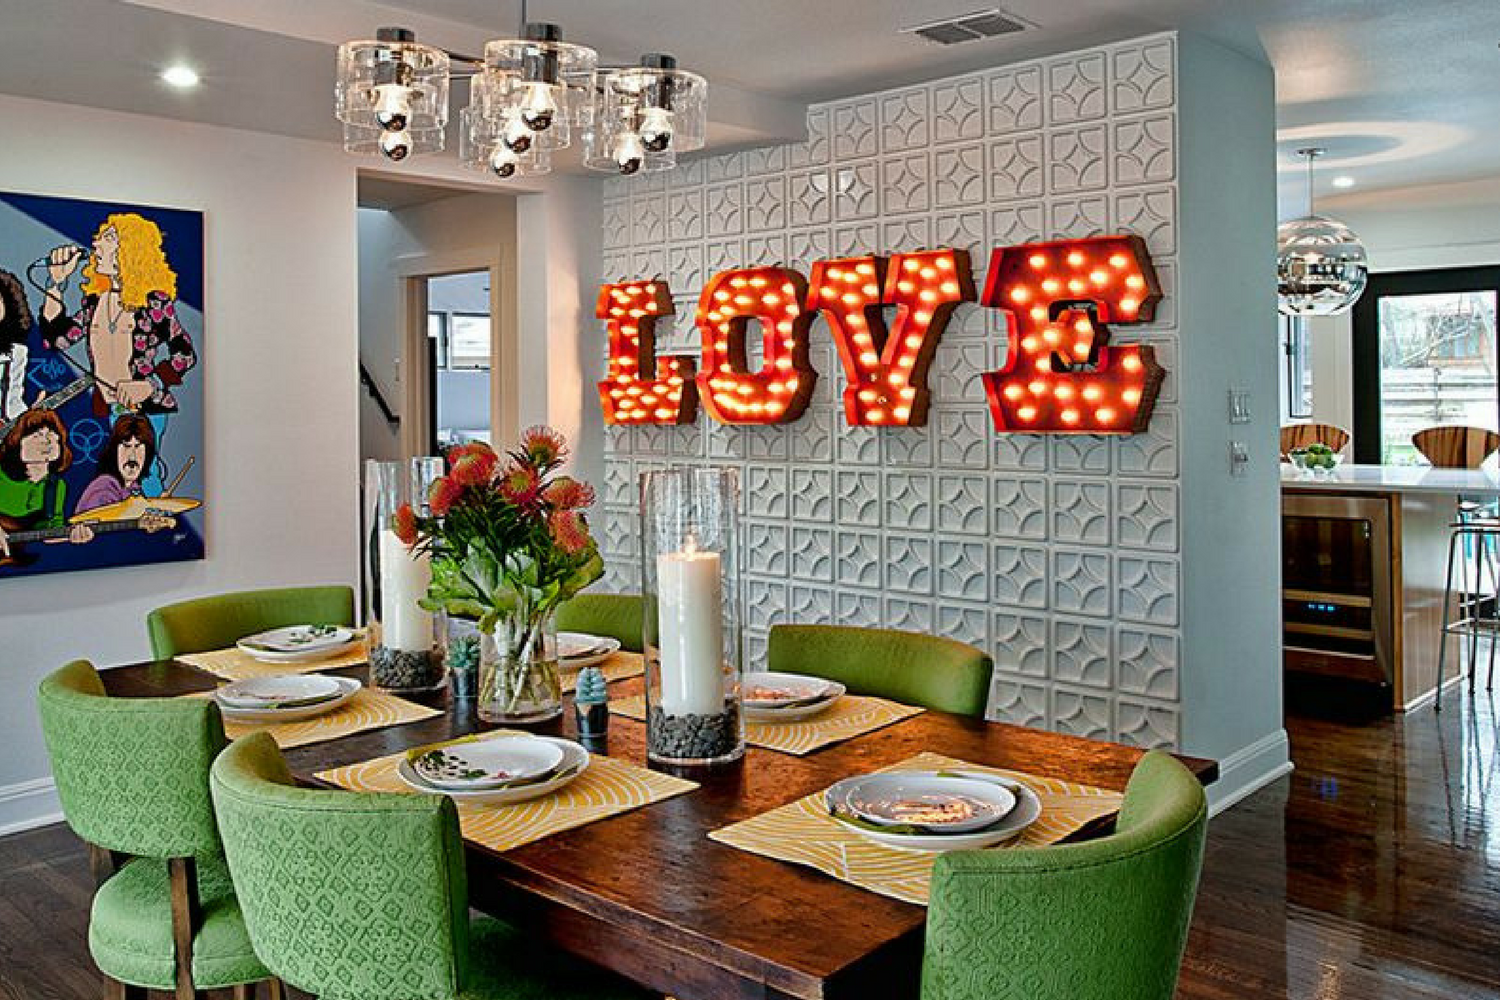 Lighting Alert The Wall Lamp Designs Your Dining Room Needs Now